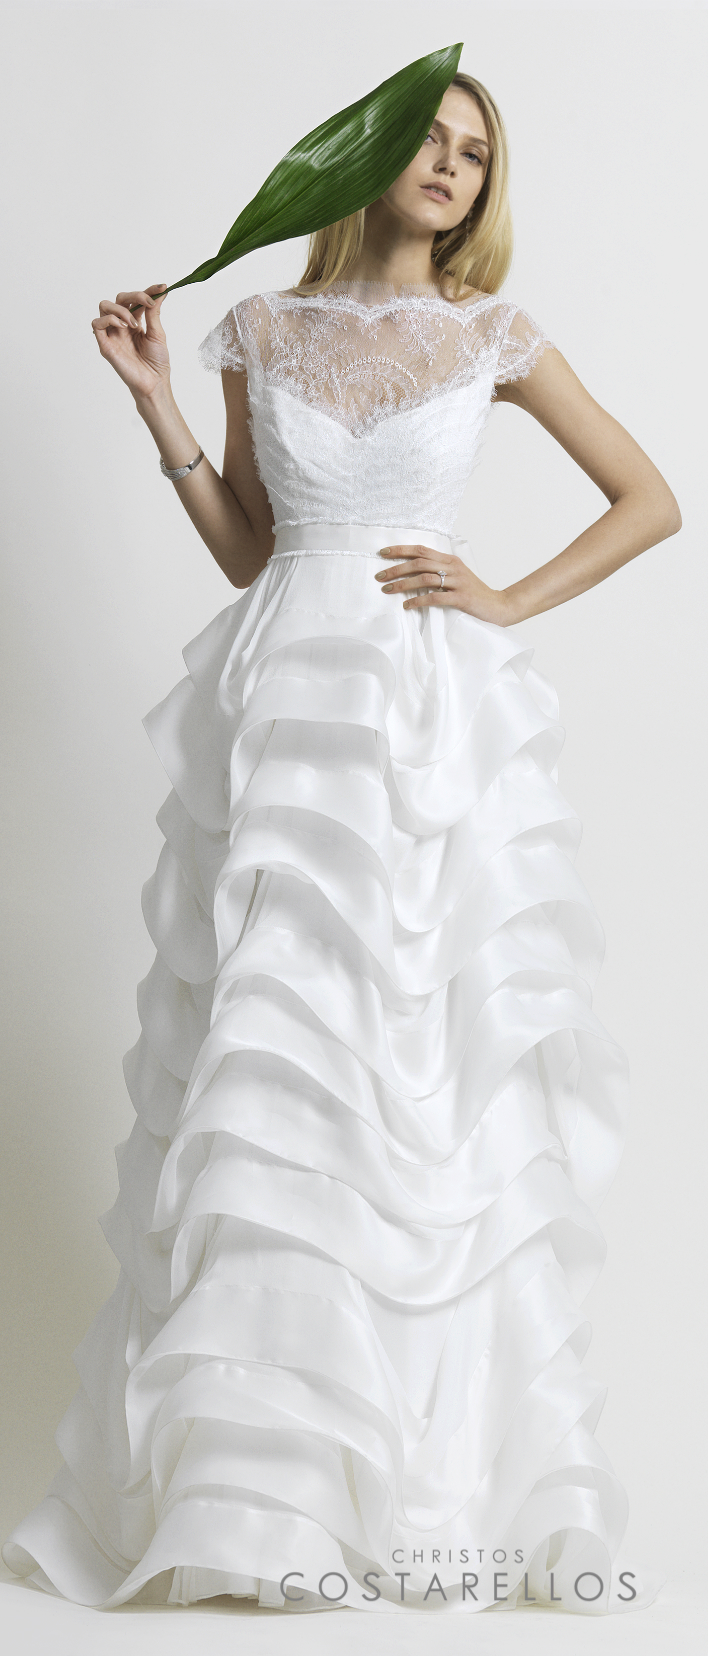 Christos Costarellos Bridal 2014 collection. A wedding dress with silk muslin, silk organza and chantilly lace. Code: BR14 02. For stockists please visit www.costarellos.com #christoscostarellos #costarellos #costarellosbride #bridaldress #bridalgown #weddingdress #weddinggown #lace #bridetobe #bridalmarket #bridalfashion #wedding